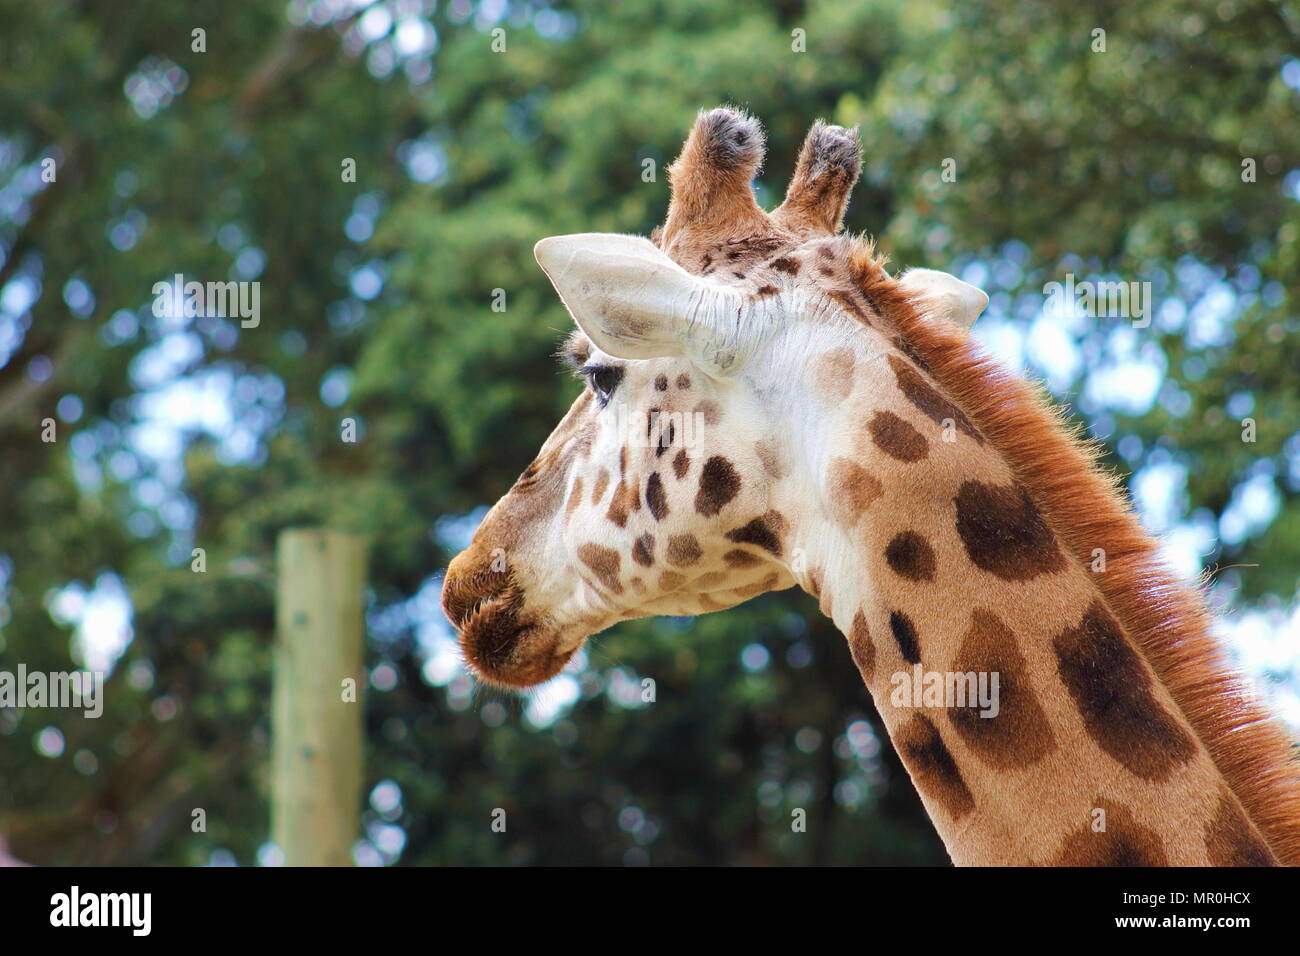 A side profile portrait of a Giraffe (Giraffa camelopardalis) - Stock Image